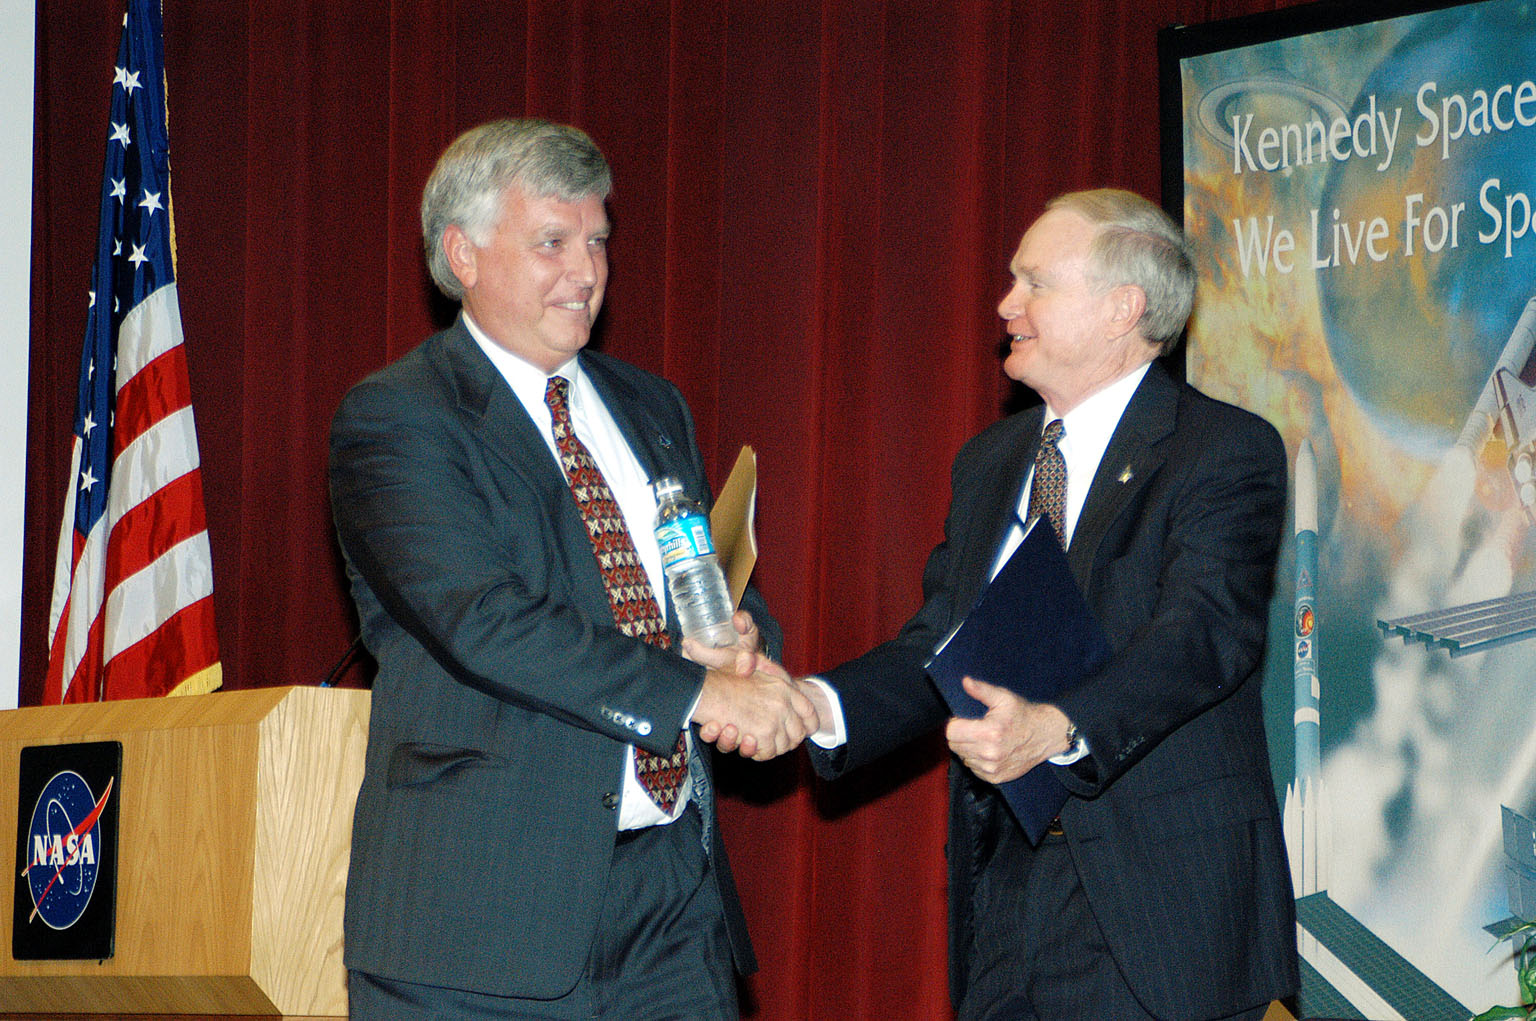 KENNEDY SPACE CENTER, FLA. - KSC Deputy Director James W. Kennedy (left) and KSC Director Roy D. Bridges shake hands before a group of KSC employees assembled in the KSC Training Auditorium. The occasion is the announcement of Kennedy as the next director of the NASA Kennedy Space Center (KSC) in Florida. Kennedy has served as KSC's deputy director since November 2002. He will succeed Bridges, who was appointed on June 13 to lead NASA's Langley Research Center, Hampton, Va.